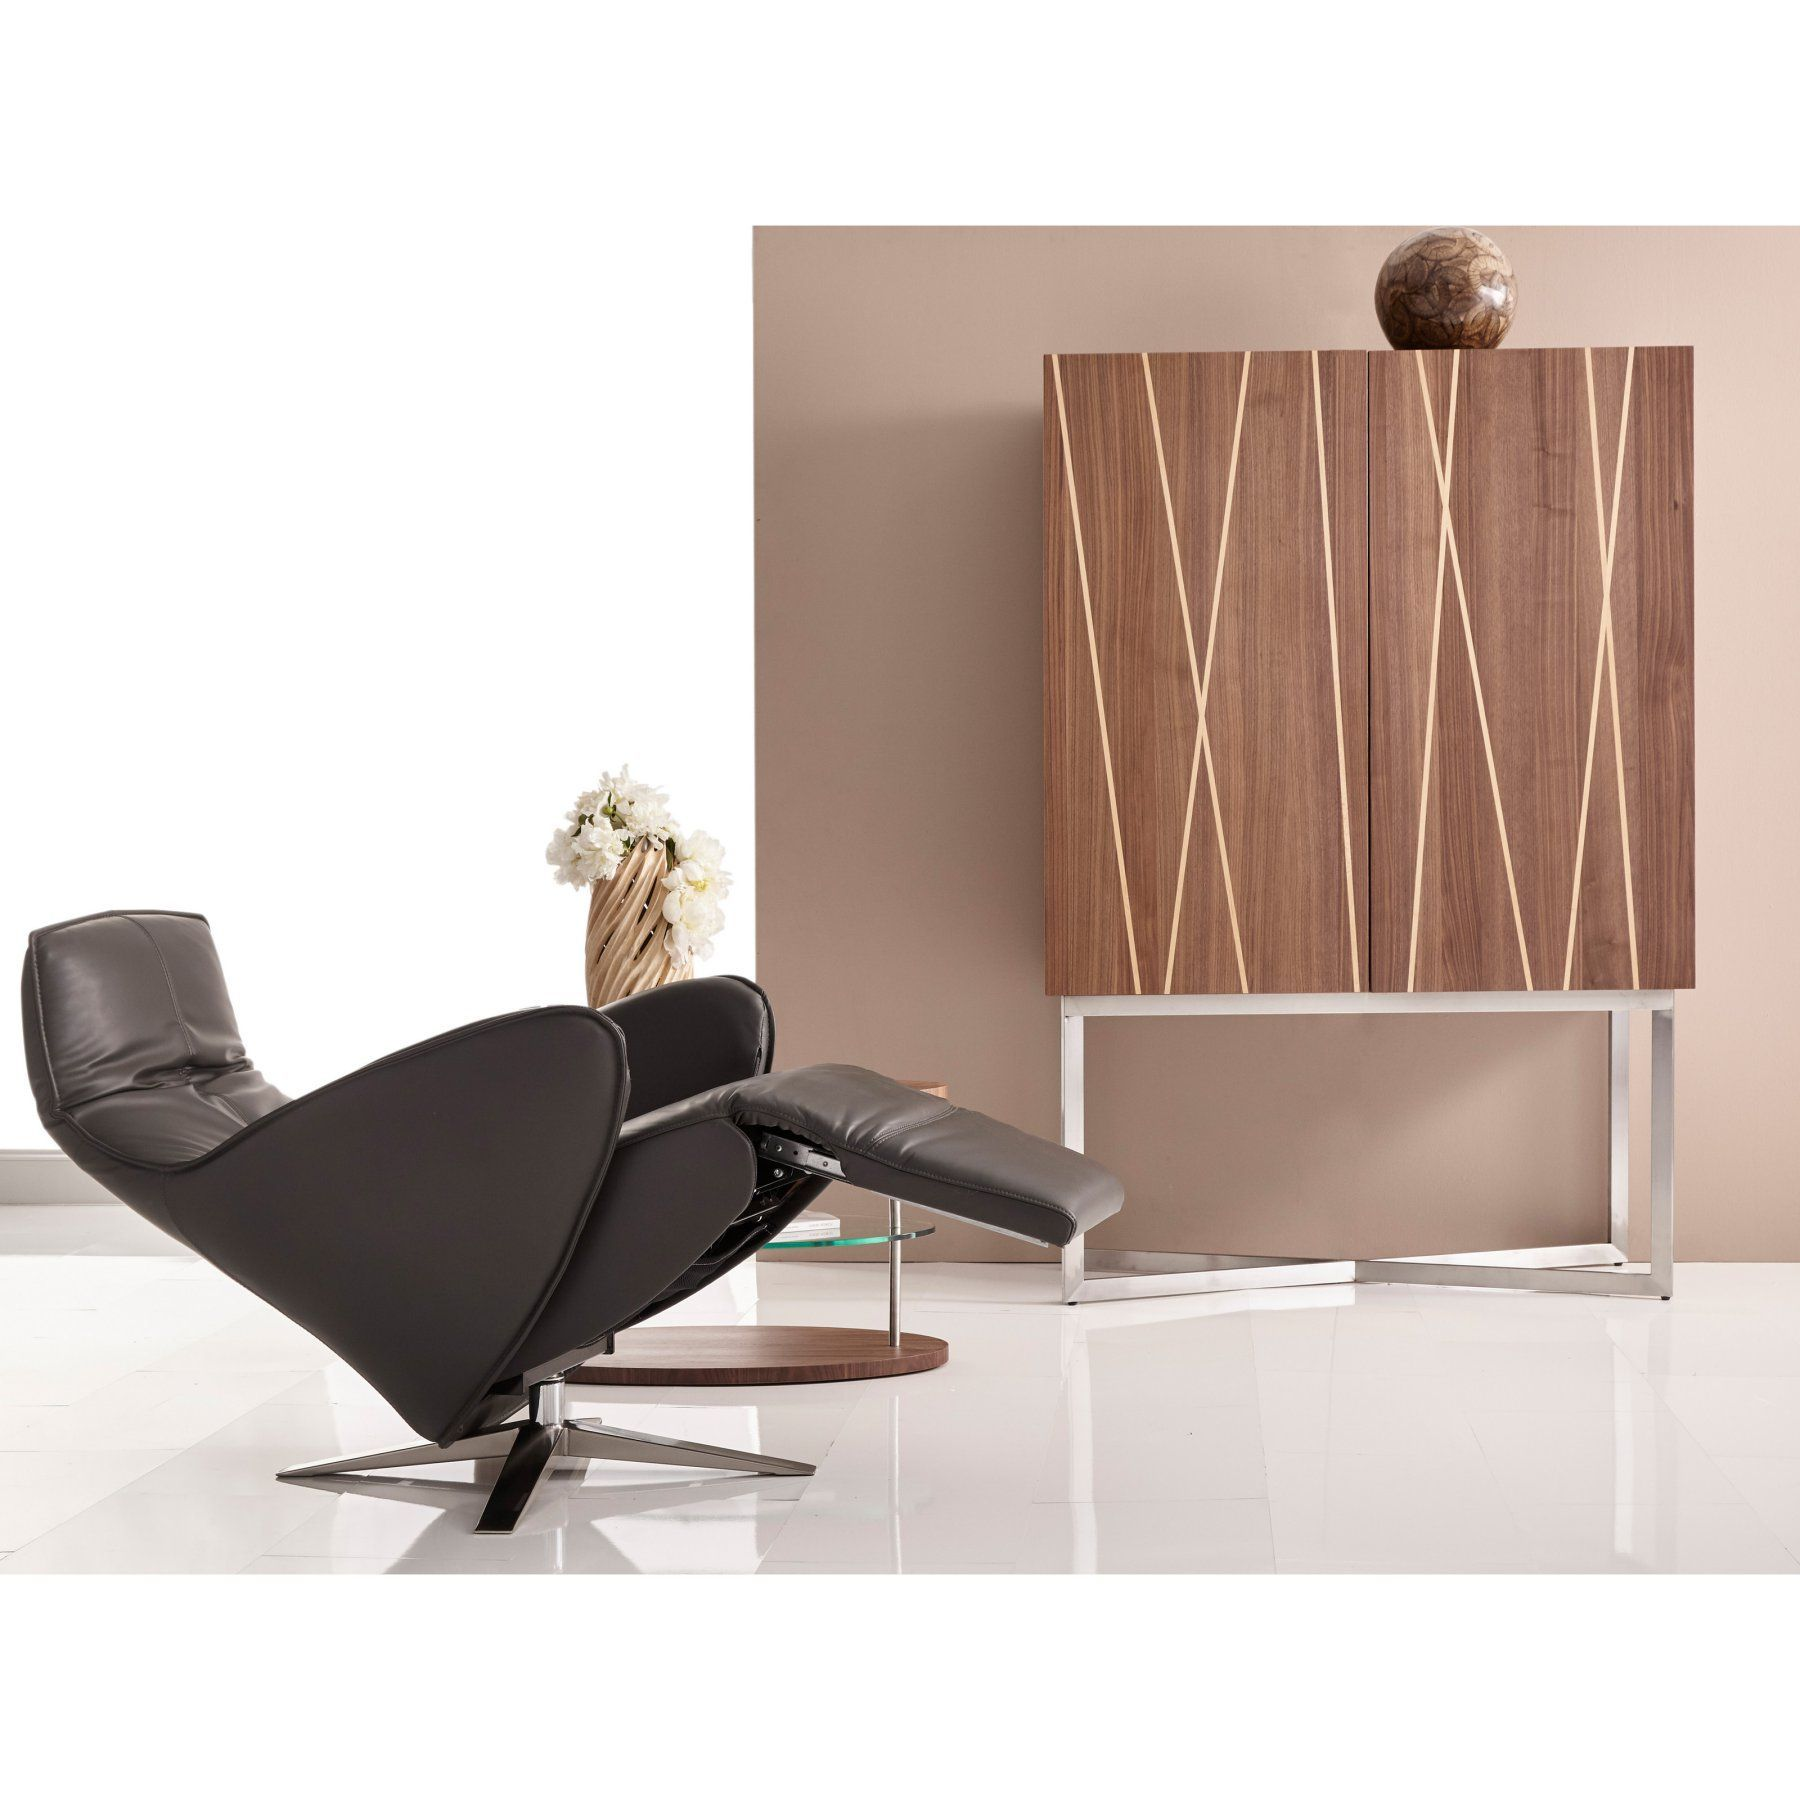 Rolf Benz Relaxfauteuil 577.Bellini Modern Living Cannella Leather Recliner Cannella Gry